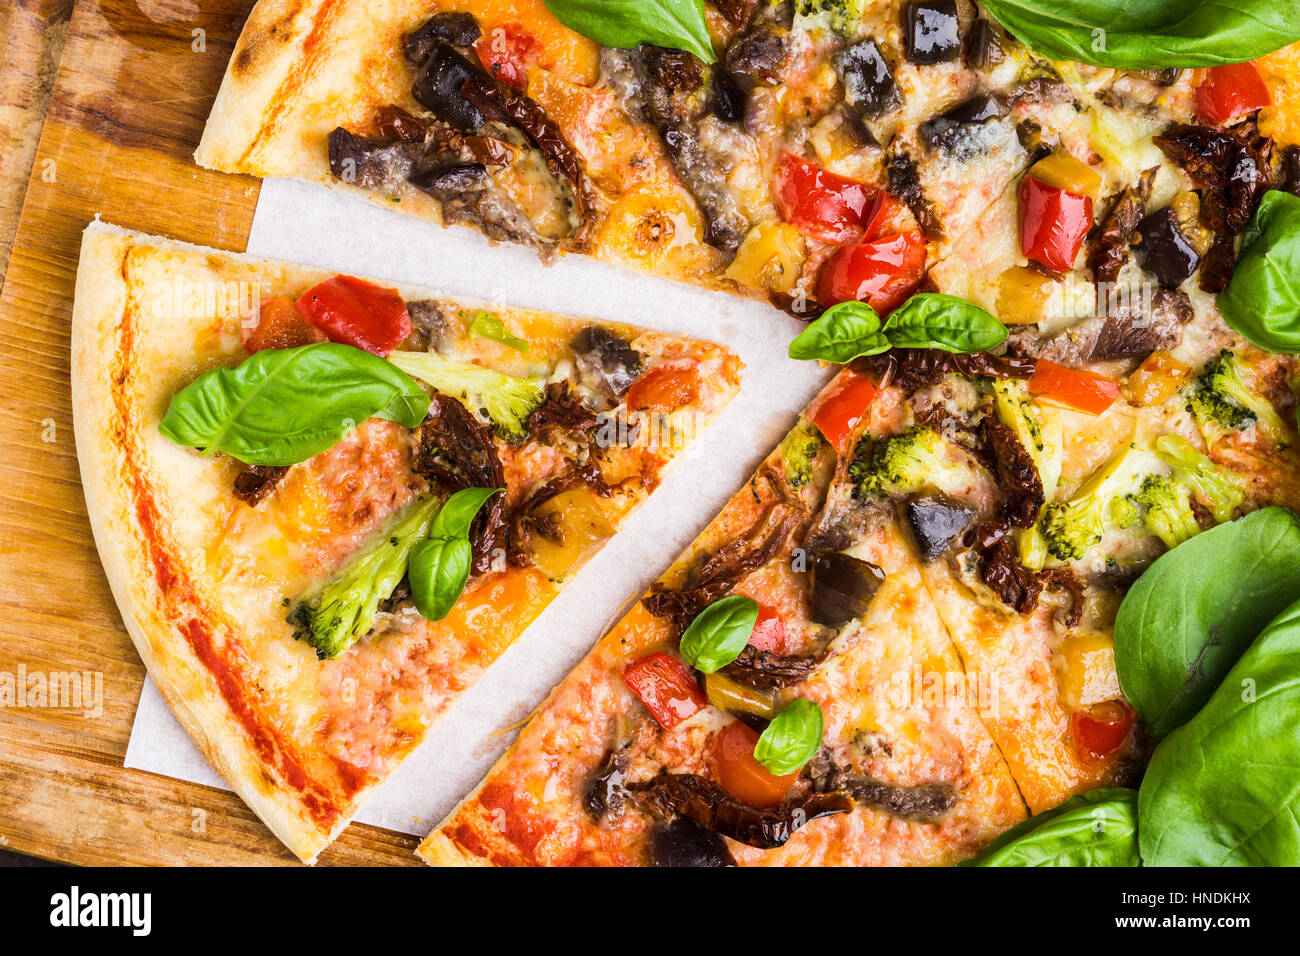 Fresh pizza served on wooden table. Shallow depth of field. - Stock Image